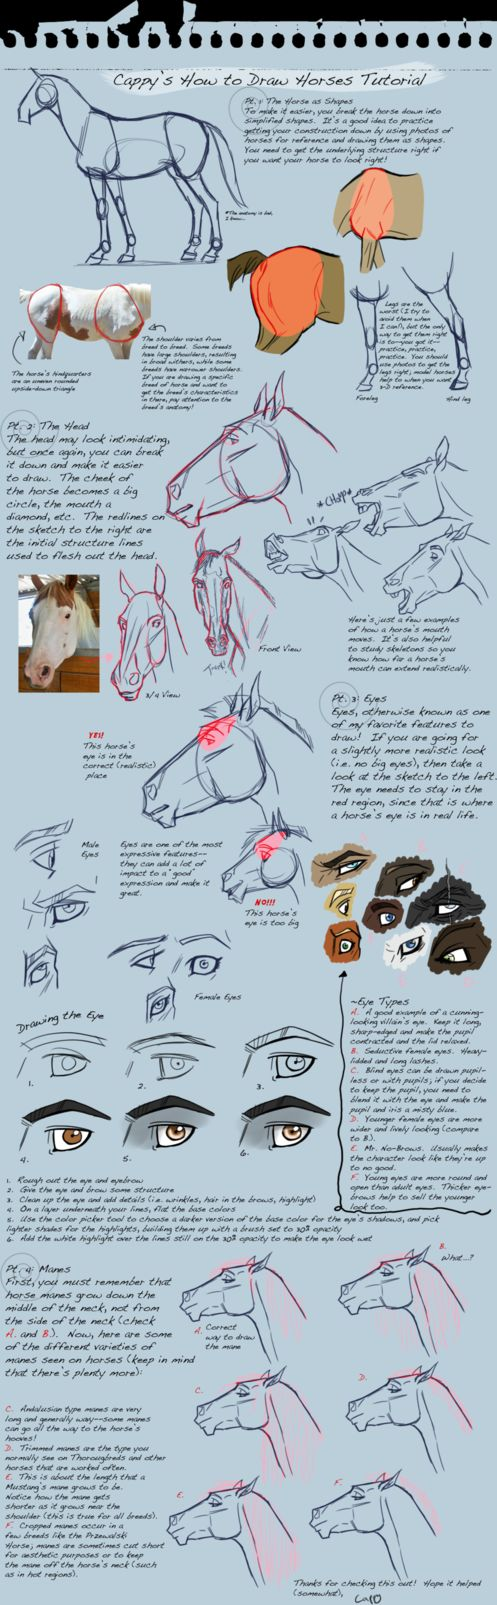 Just a quick tutorial I threw together while chatting with Starhorse and Wadhifitook. They cheered me up. I draw these little guys incessently on my notebook margins. Horses leap over biology notes...